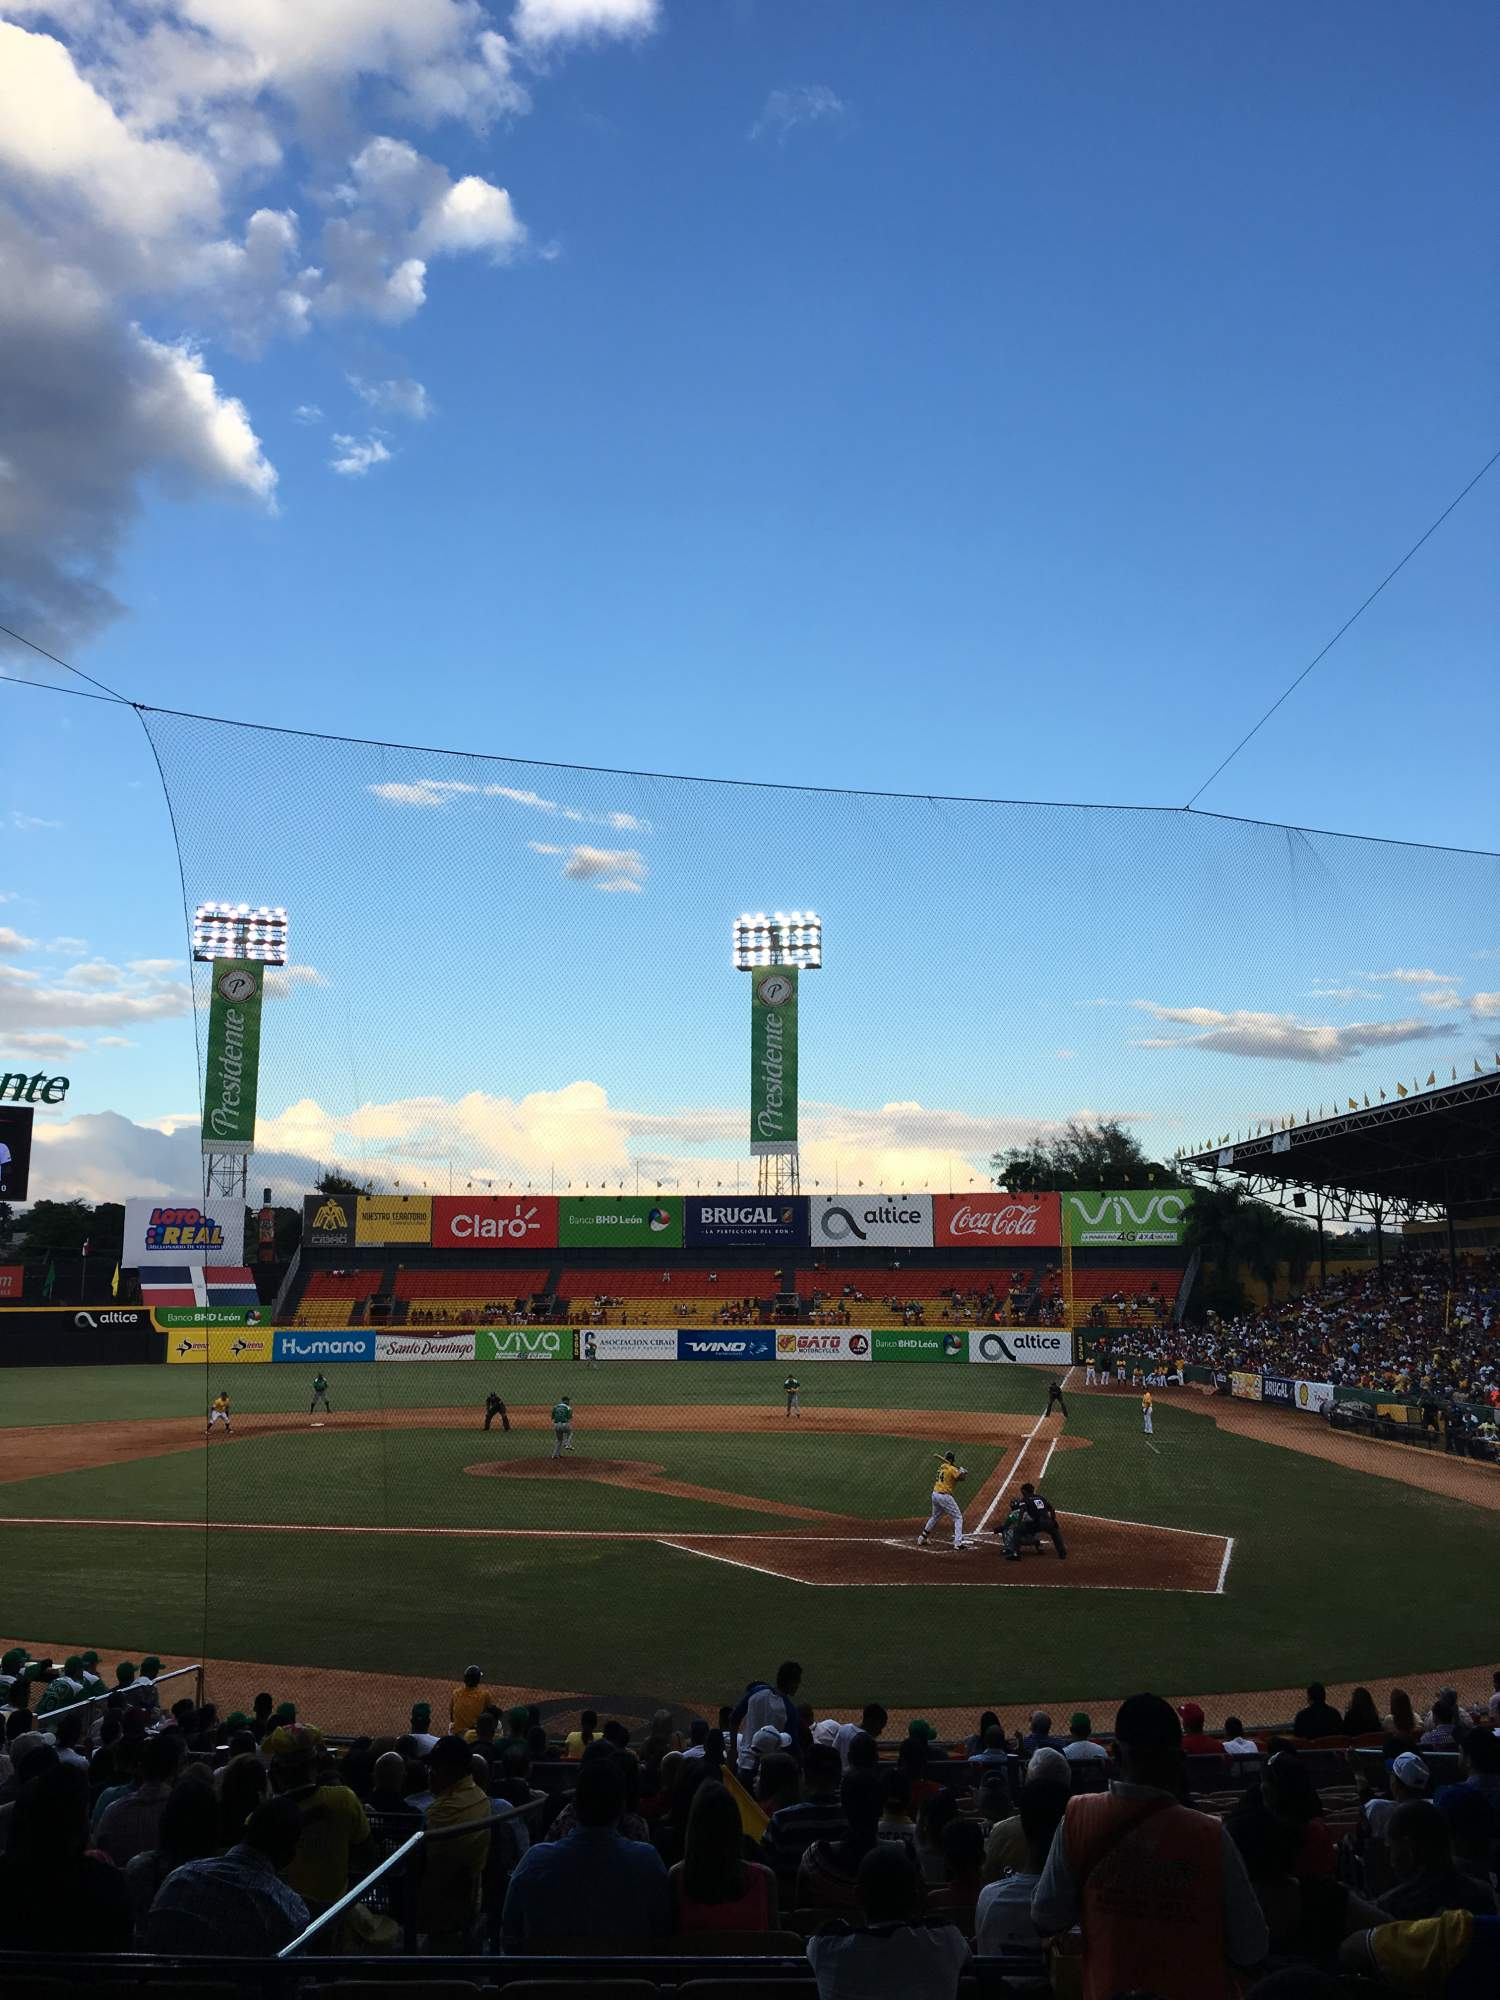 Watching a baseball game at the Cibao stadium, Santiago, Dominican Republic